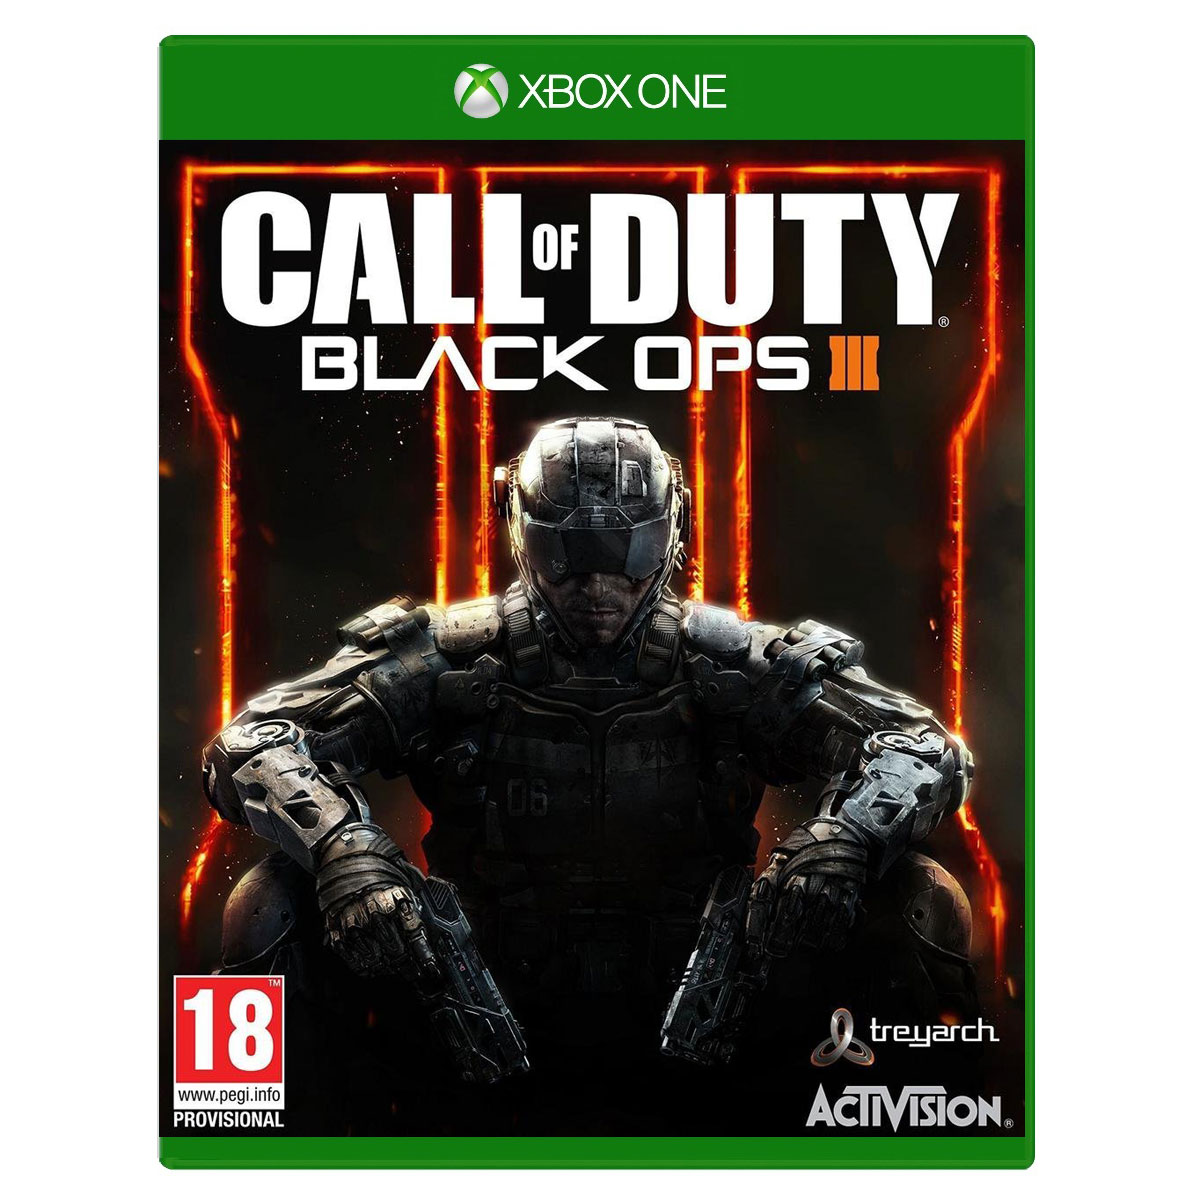 call of duty black ops iii xbox one jeux xbox one activision sur. Black Bedroom Furniture Sets. Home Design Ideas